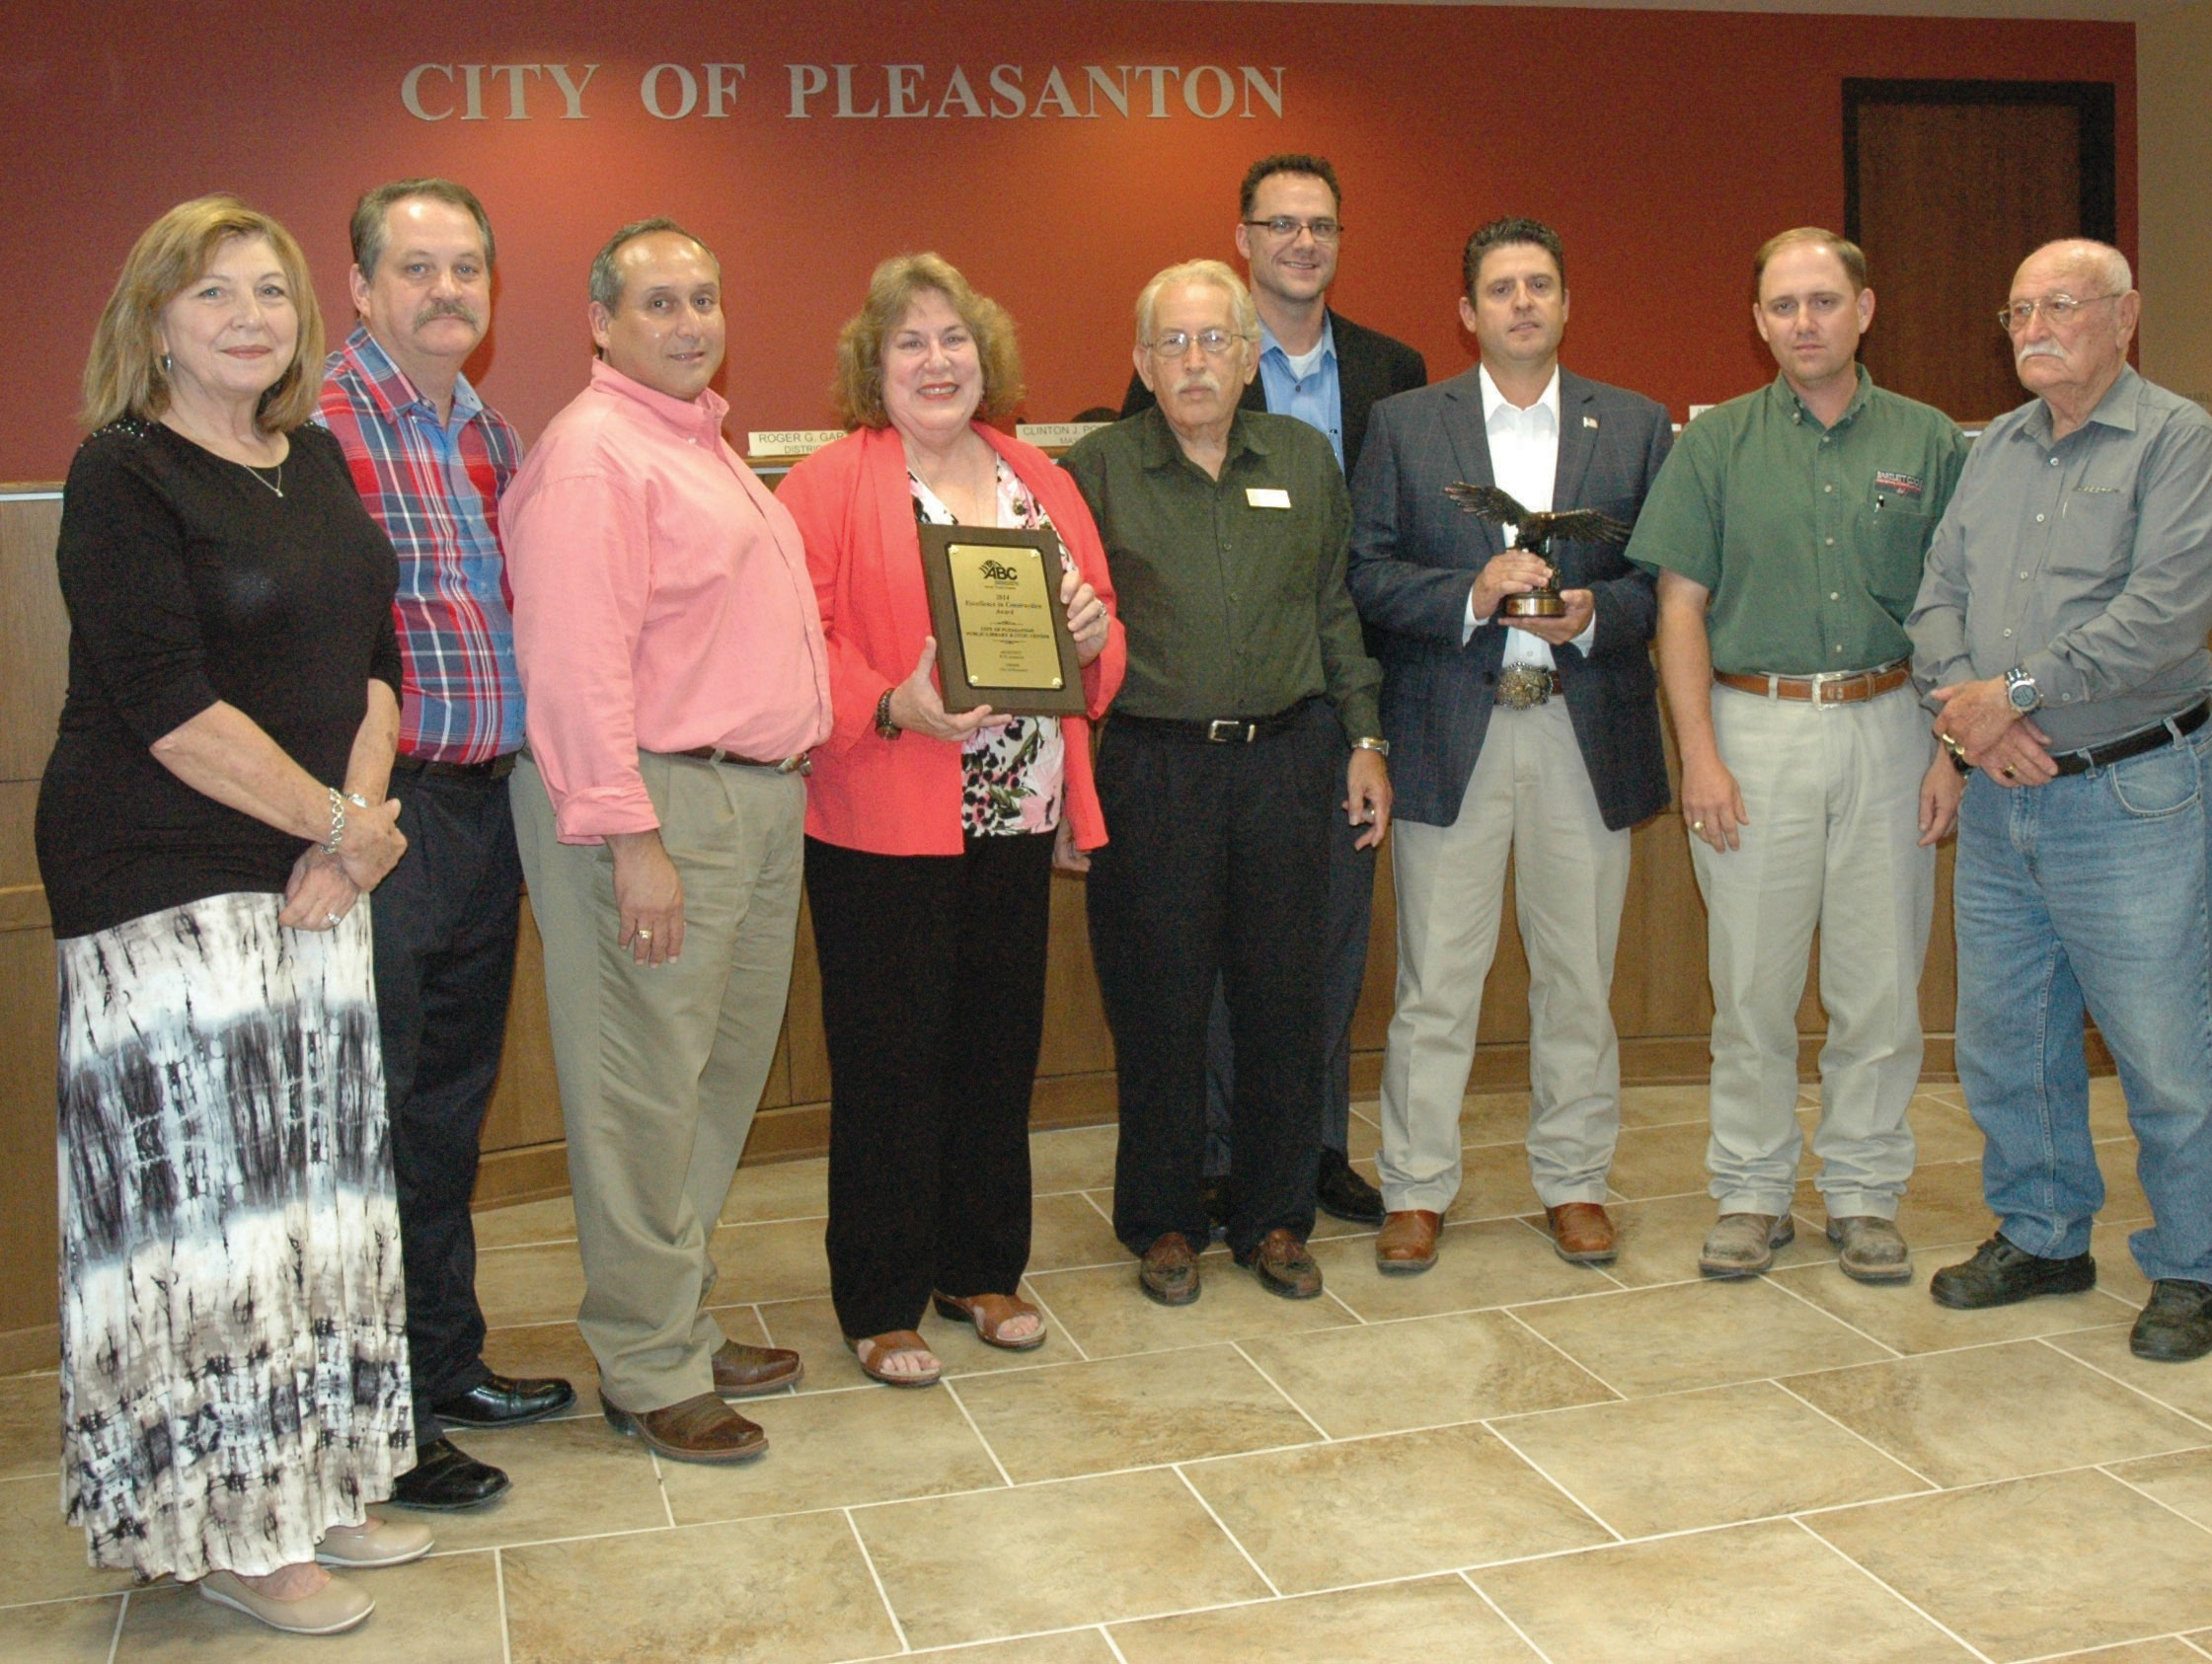 Pleasanton Mayor and City Council received the Associated Builders and Contractors, Inc. - South Texas Chapter's Historic Restoration - Projects valued $2-10 million award at the September 4 meeting. Bartlett Cocke General Contractors, with the assistance of RVK Architects, nominated the Pleasanton Civic Center, Public Library and Freedom Center project. Receiving the awards are, left to right, Diana Prasifka, District 3 Councilmember; Douglas Best, District 1 Councilmember; J. R. Gallegos, District 4 Councilmember; Jeanne Israel, District 6 Councilmember, Roger Garza District 5 Councilmember, Heath Wenrich, LEED AP RVK Architect/Principal; Mayor Clint Powell, James Caraway, LEED AP Bartlett Cocke Project Manager and Abraham Saenz District 2 Councilmember.